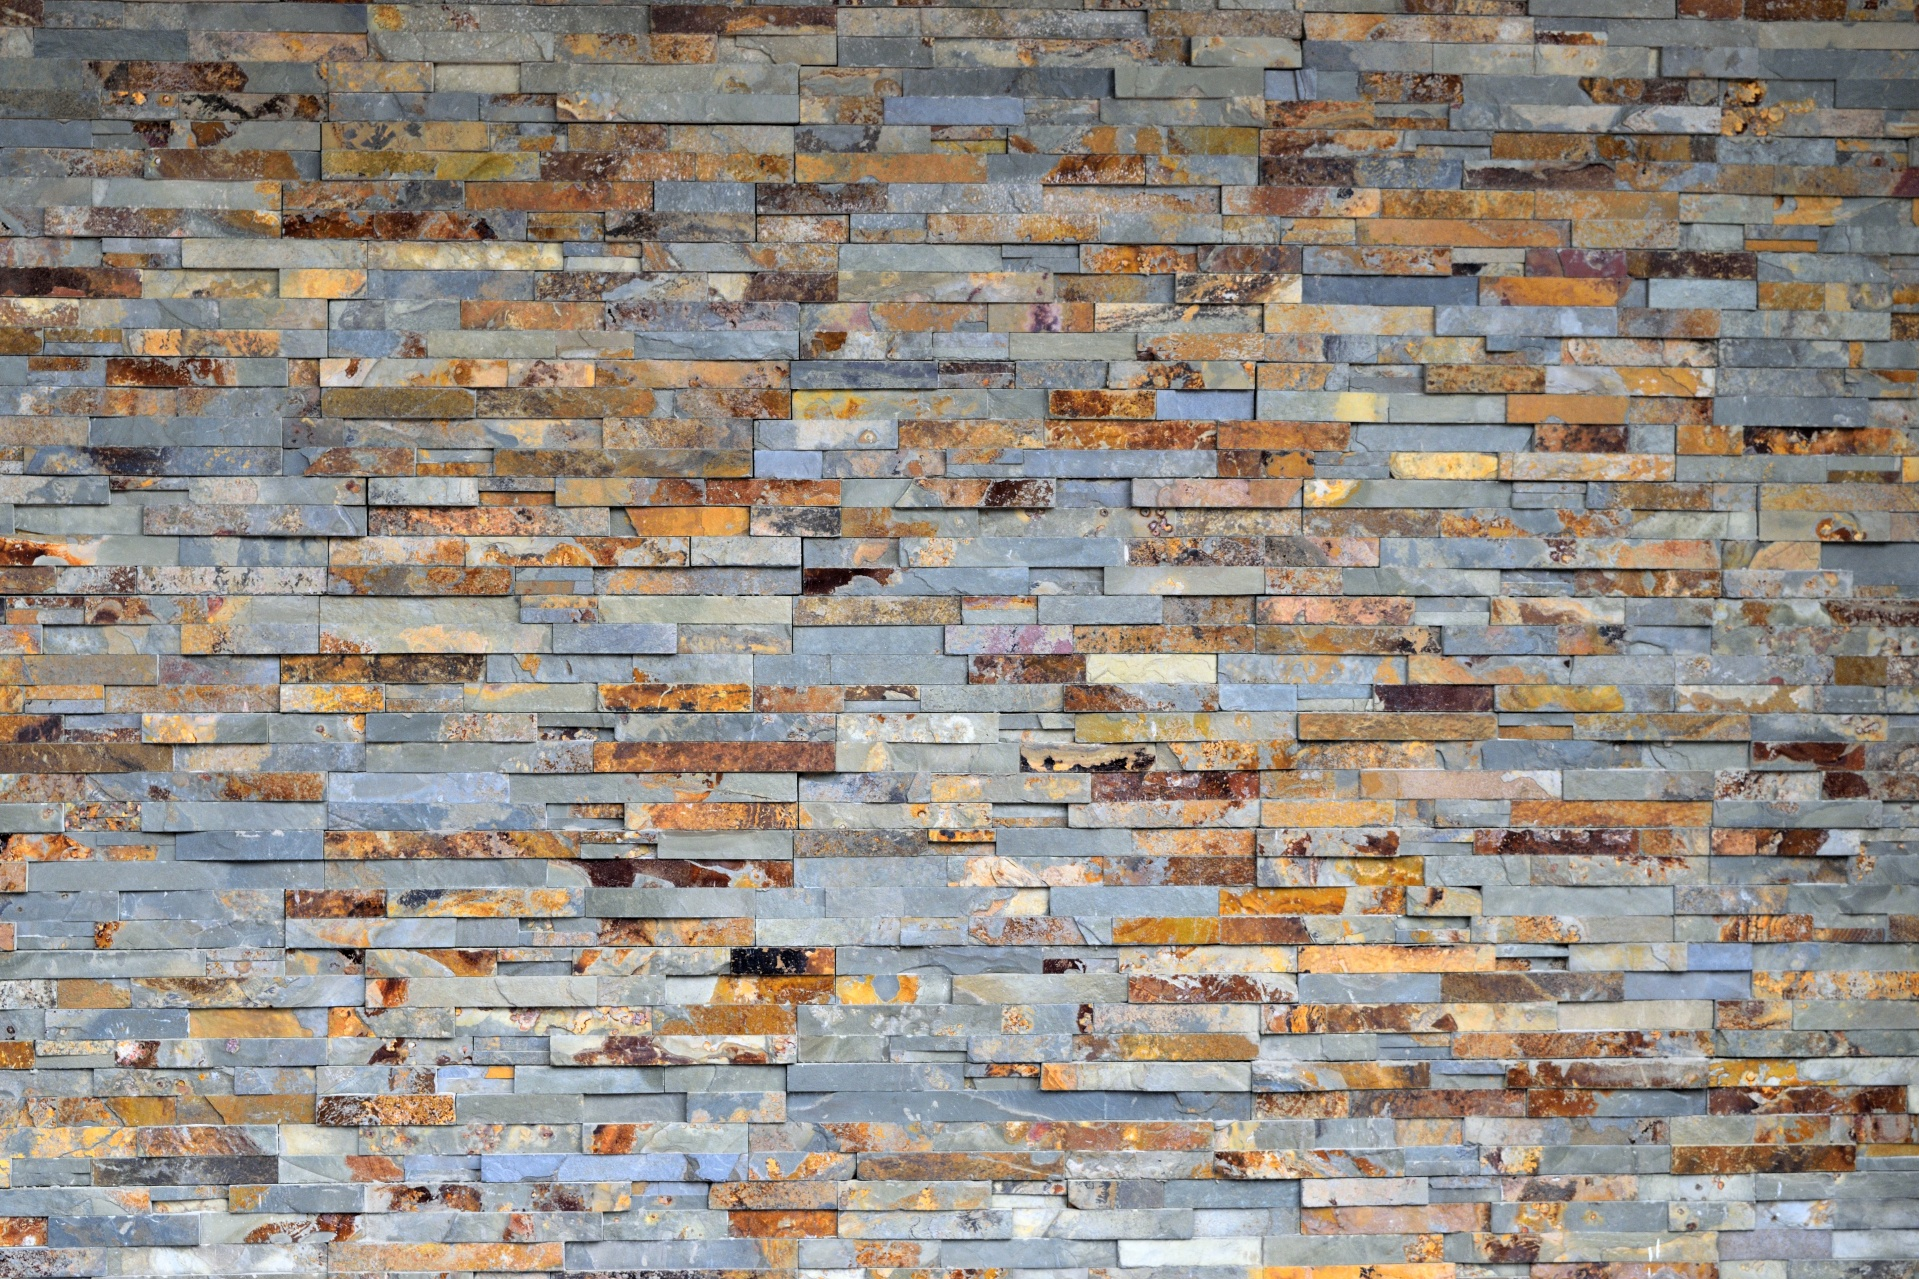 Brick Wall Background Free Stock Photo - Public Domain Pictures